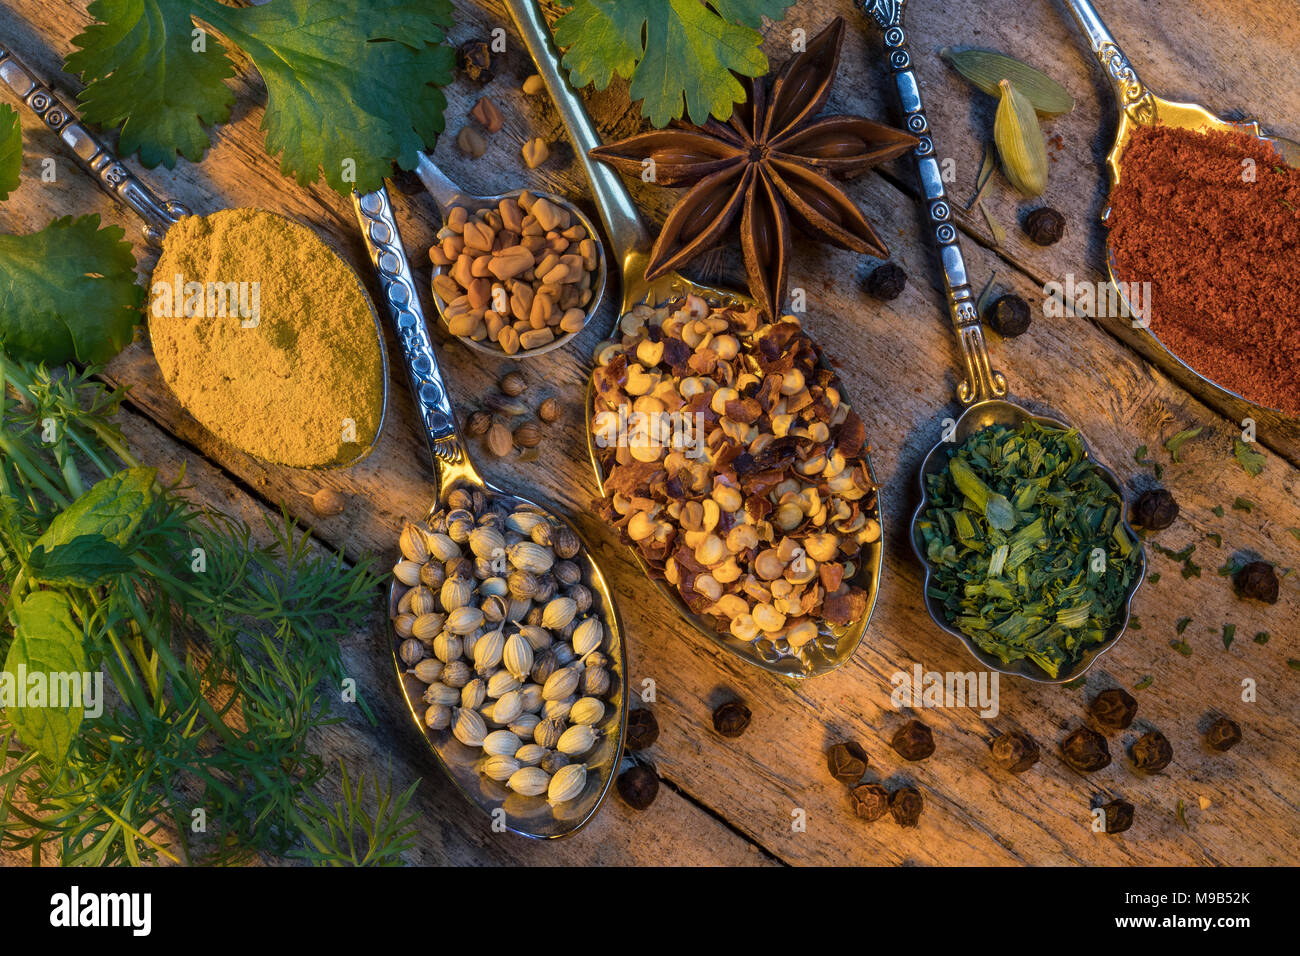 Selection of herbs and spices used to add flavor to cooking. - Stock Image